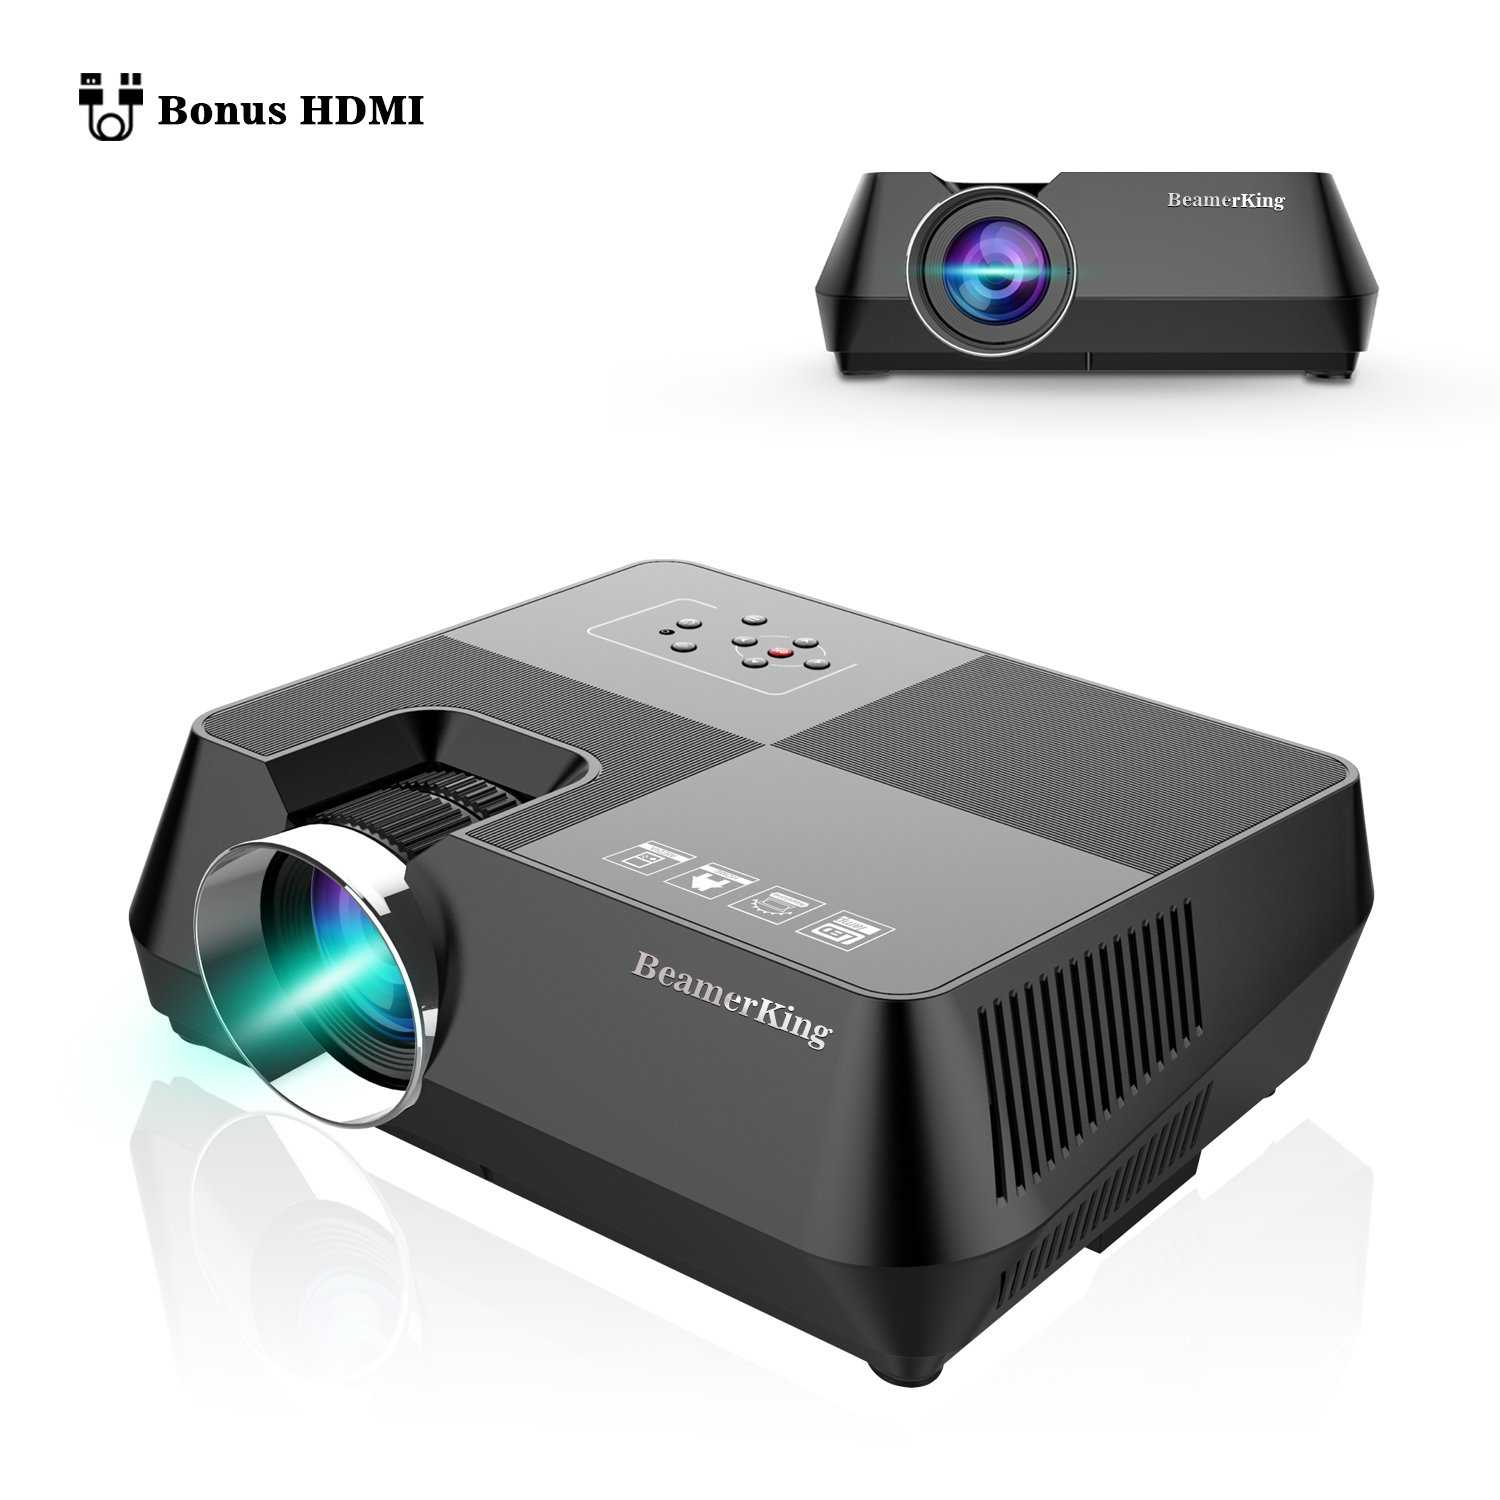 BeamerKing Projector Home Theater Video +30% Lumens Mini Portable Led Projectors Projector Up 170'' Full HD 1080P Movie Screen with HDMI USB VGA AV for iPhone Laptop Android DVD Smartphone PS4 Ipad